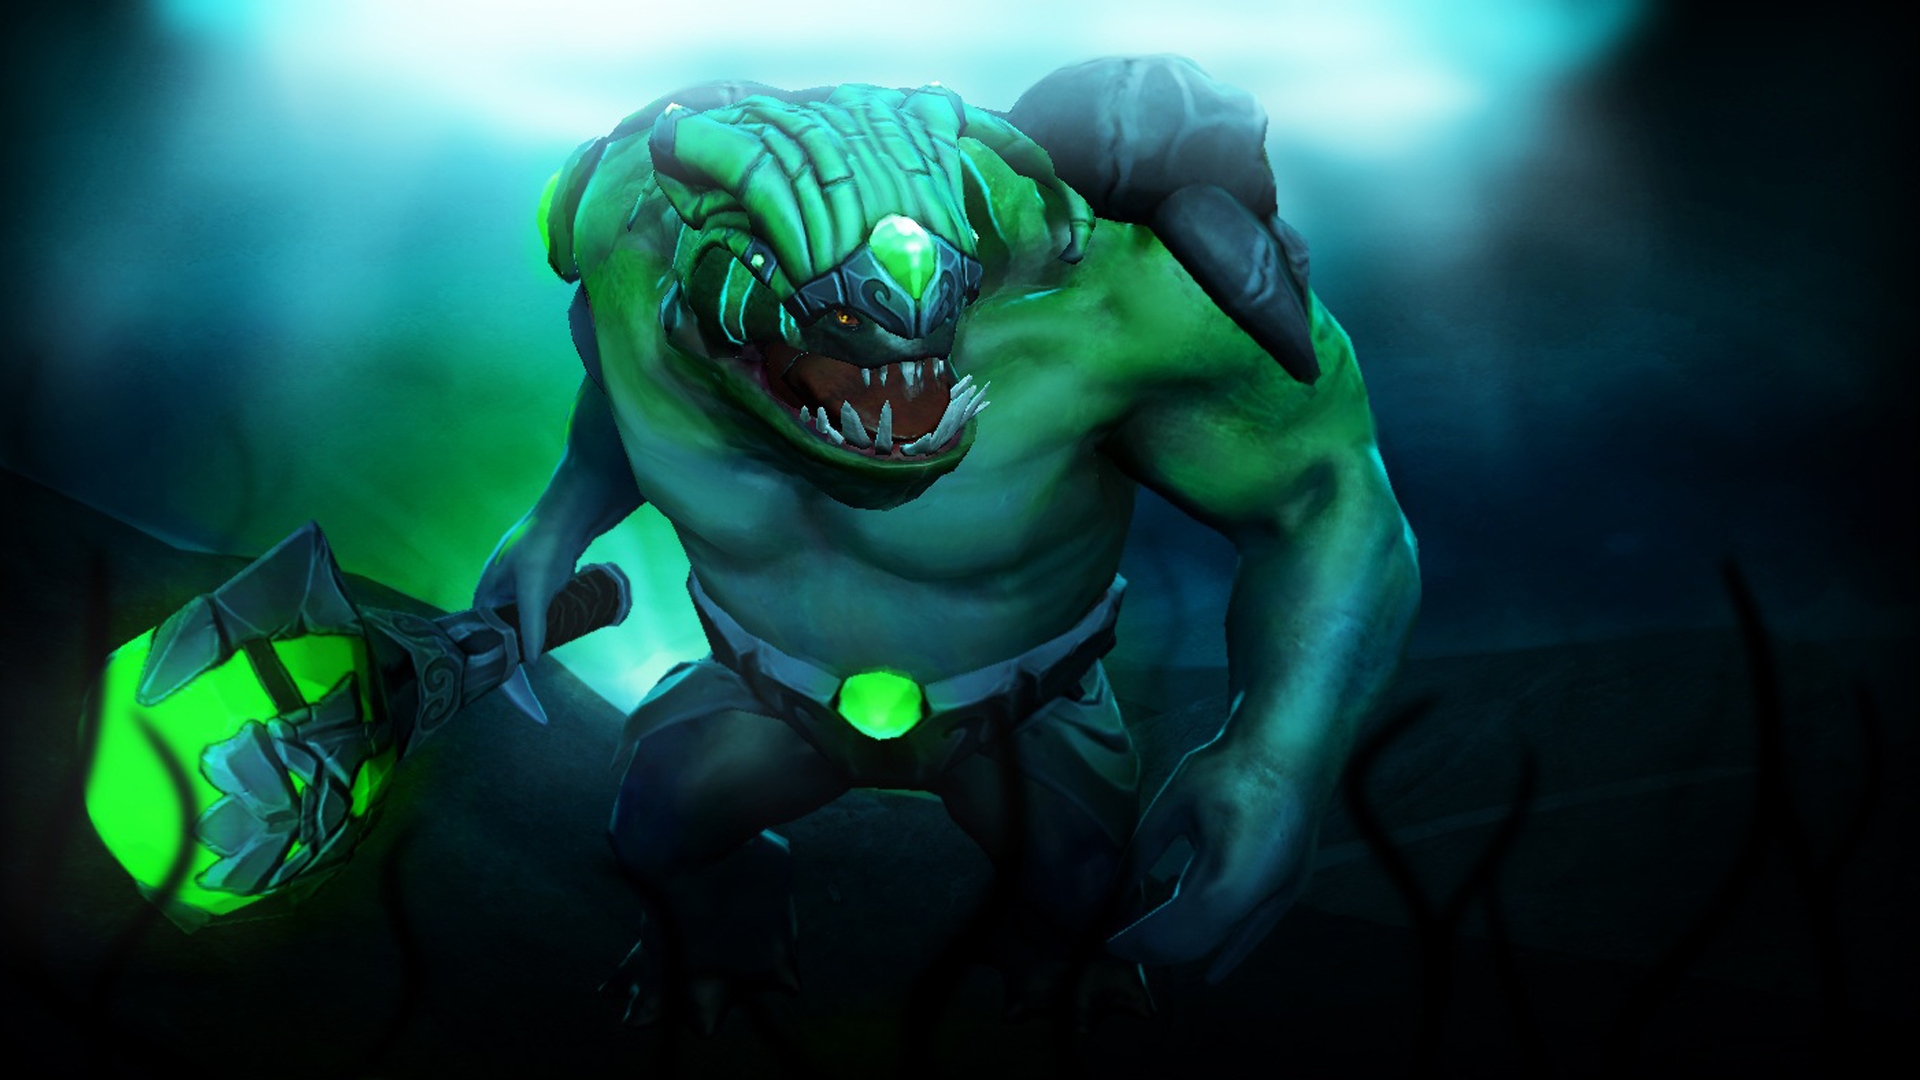 Dota 2 Anime Characters Tidehunter Set Vector Art Hd